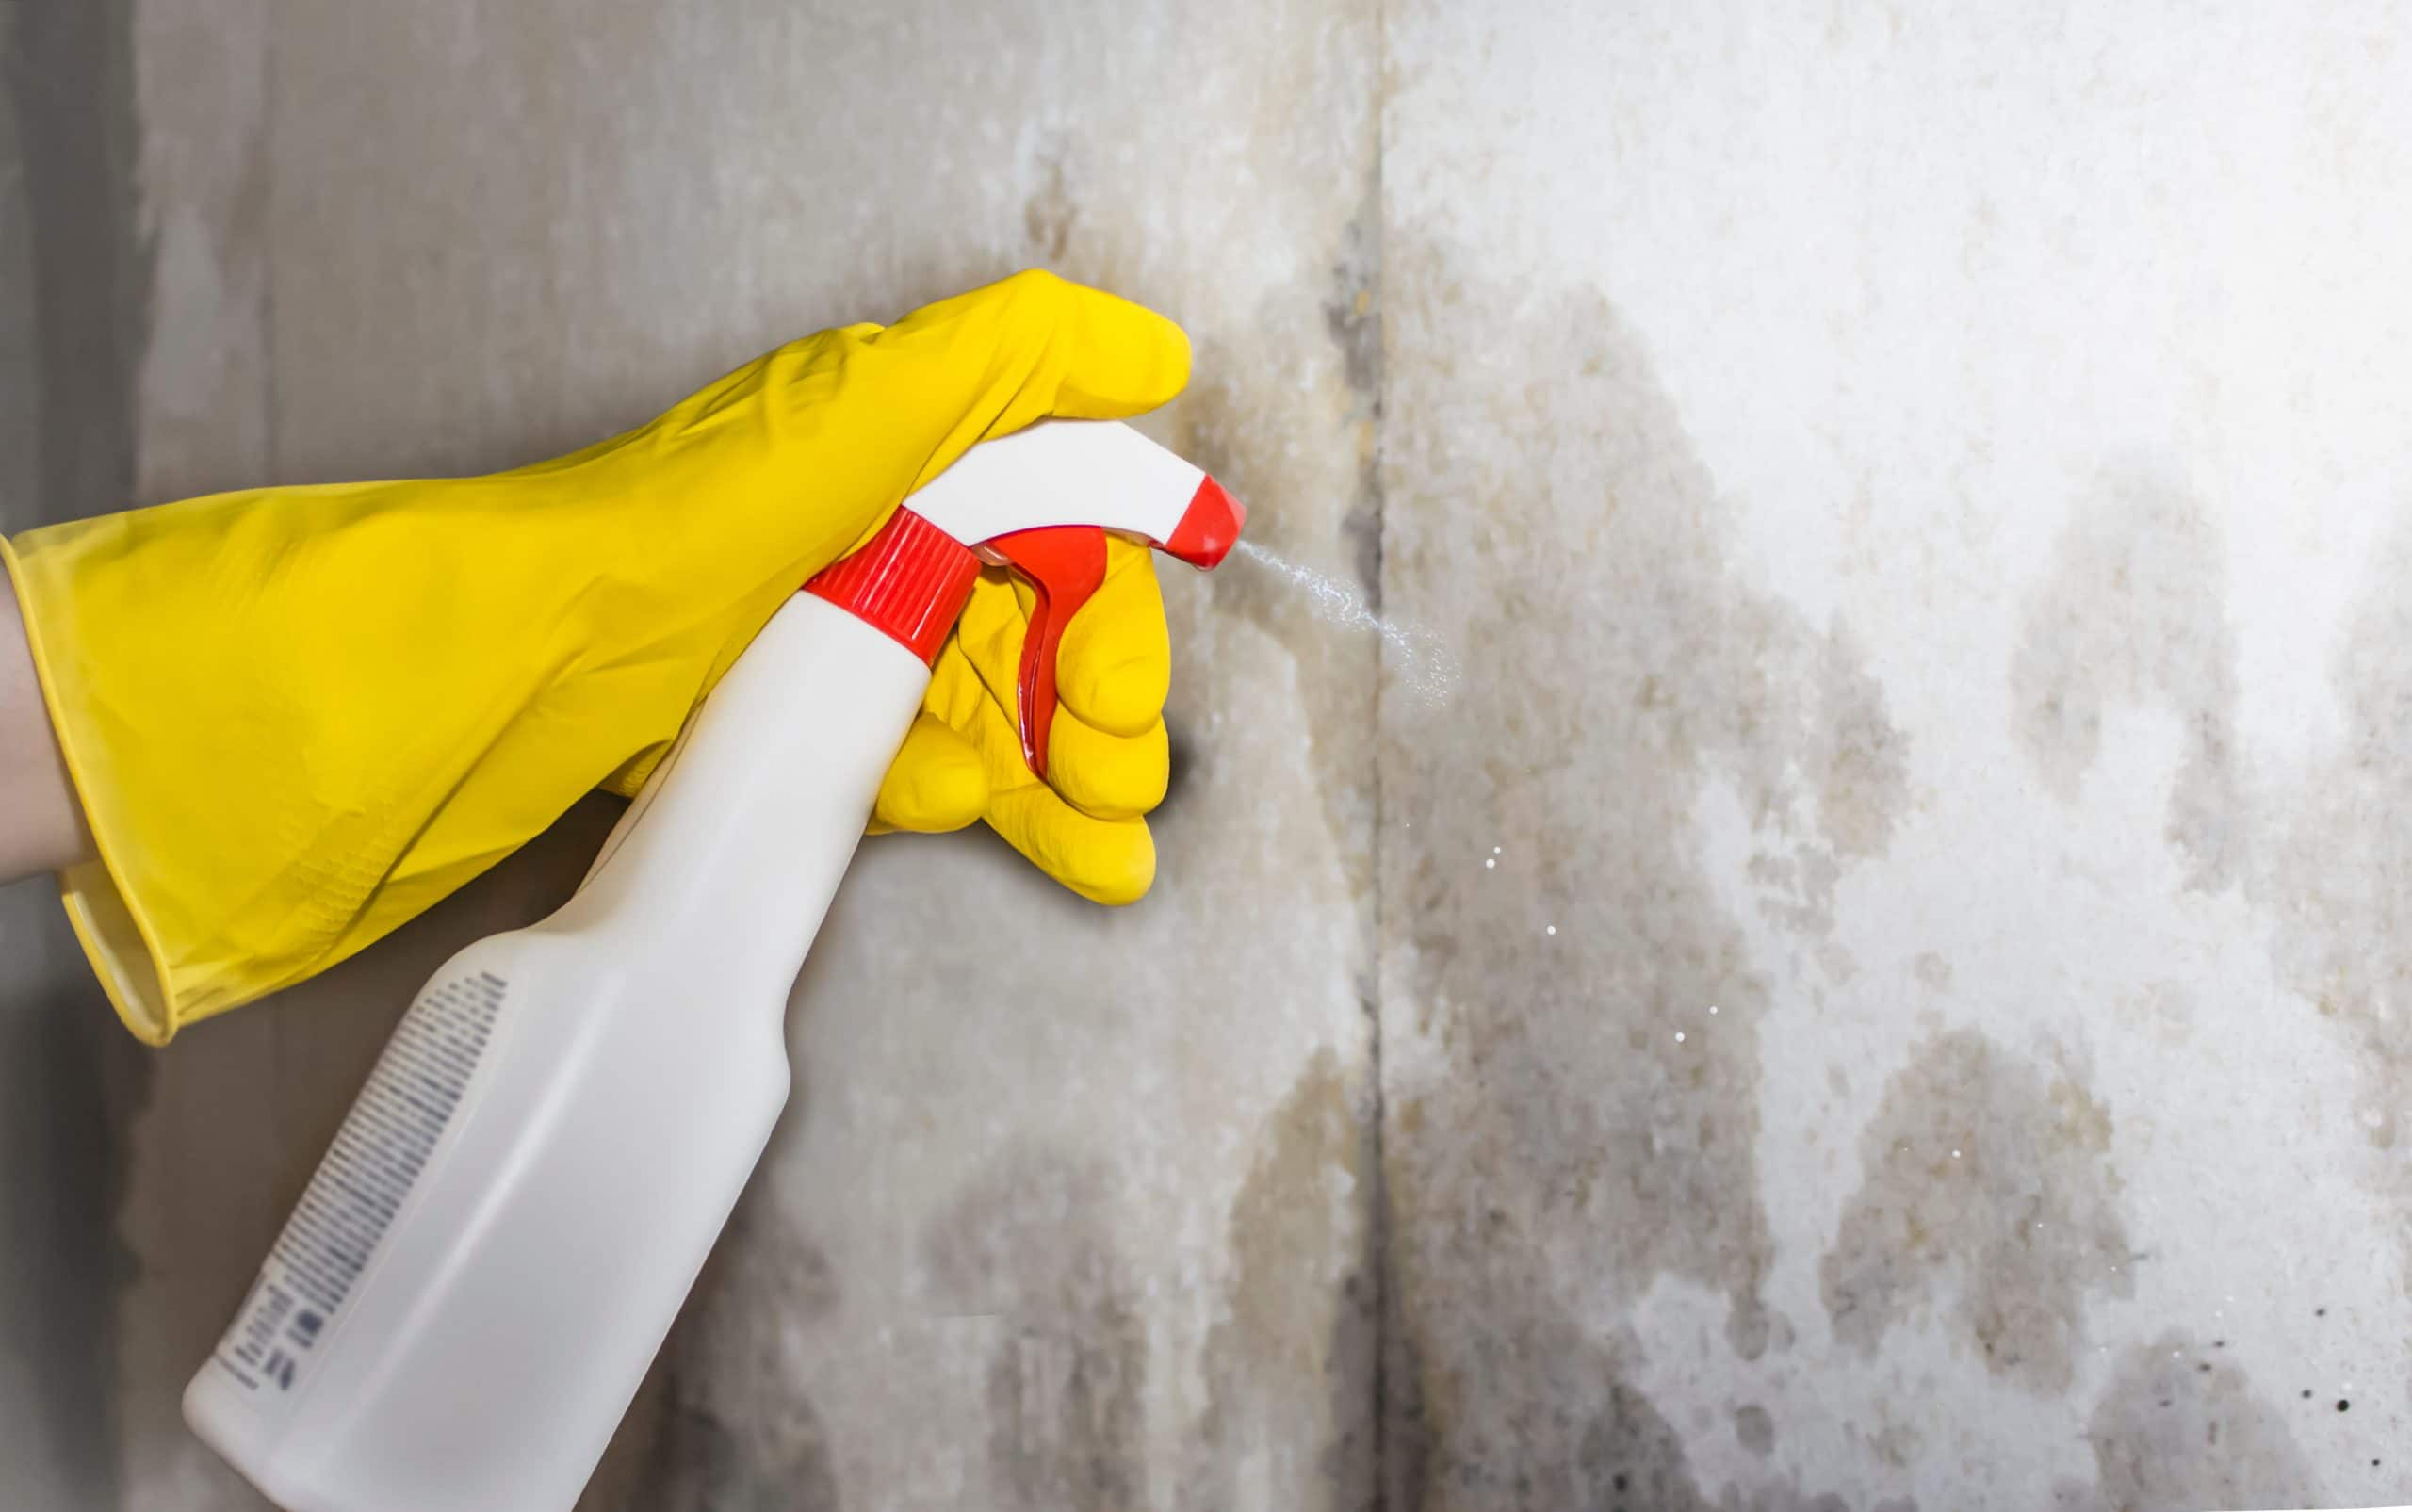 a person sprays a remedy for mold and other pests on the walls of the house - Air Quality Express